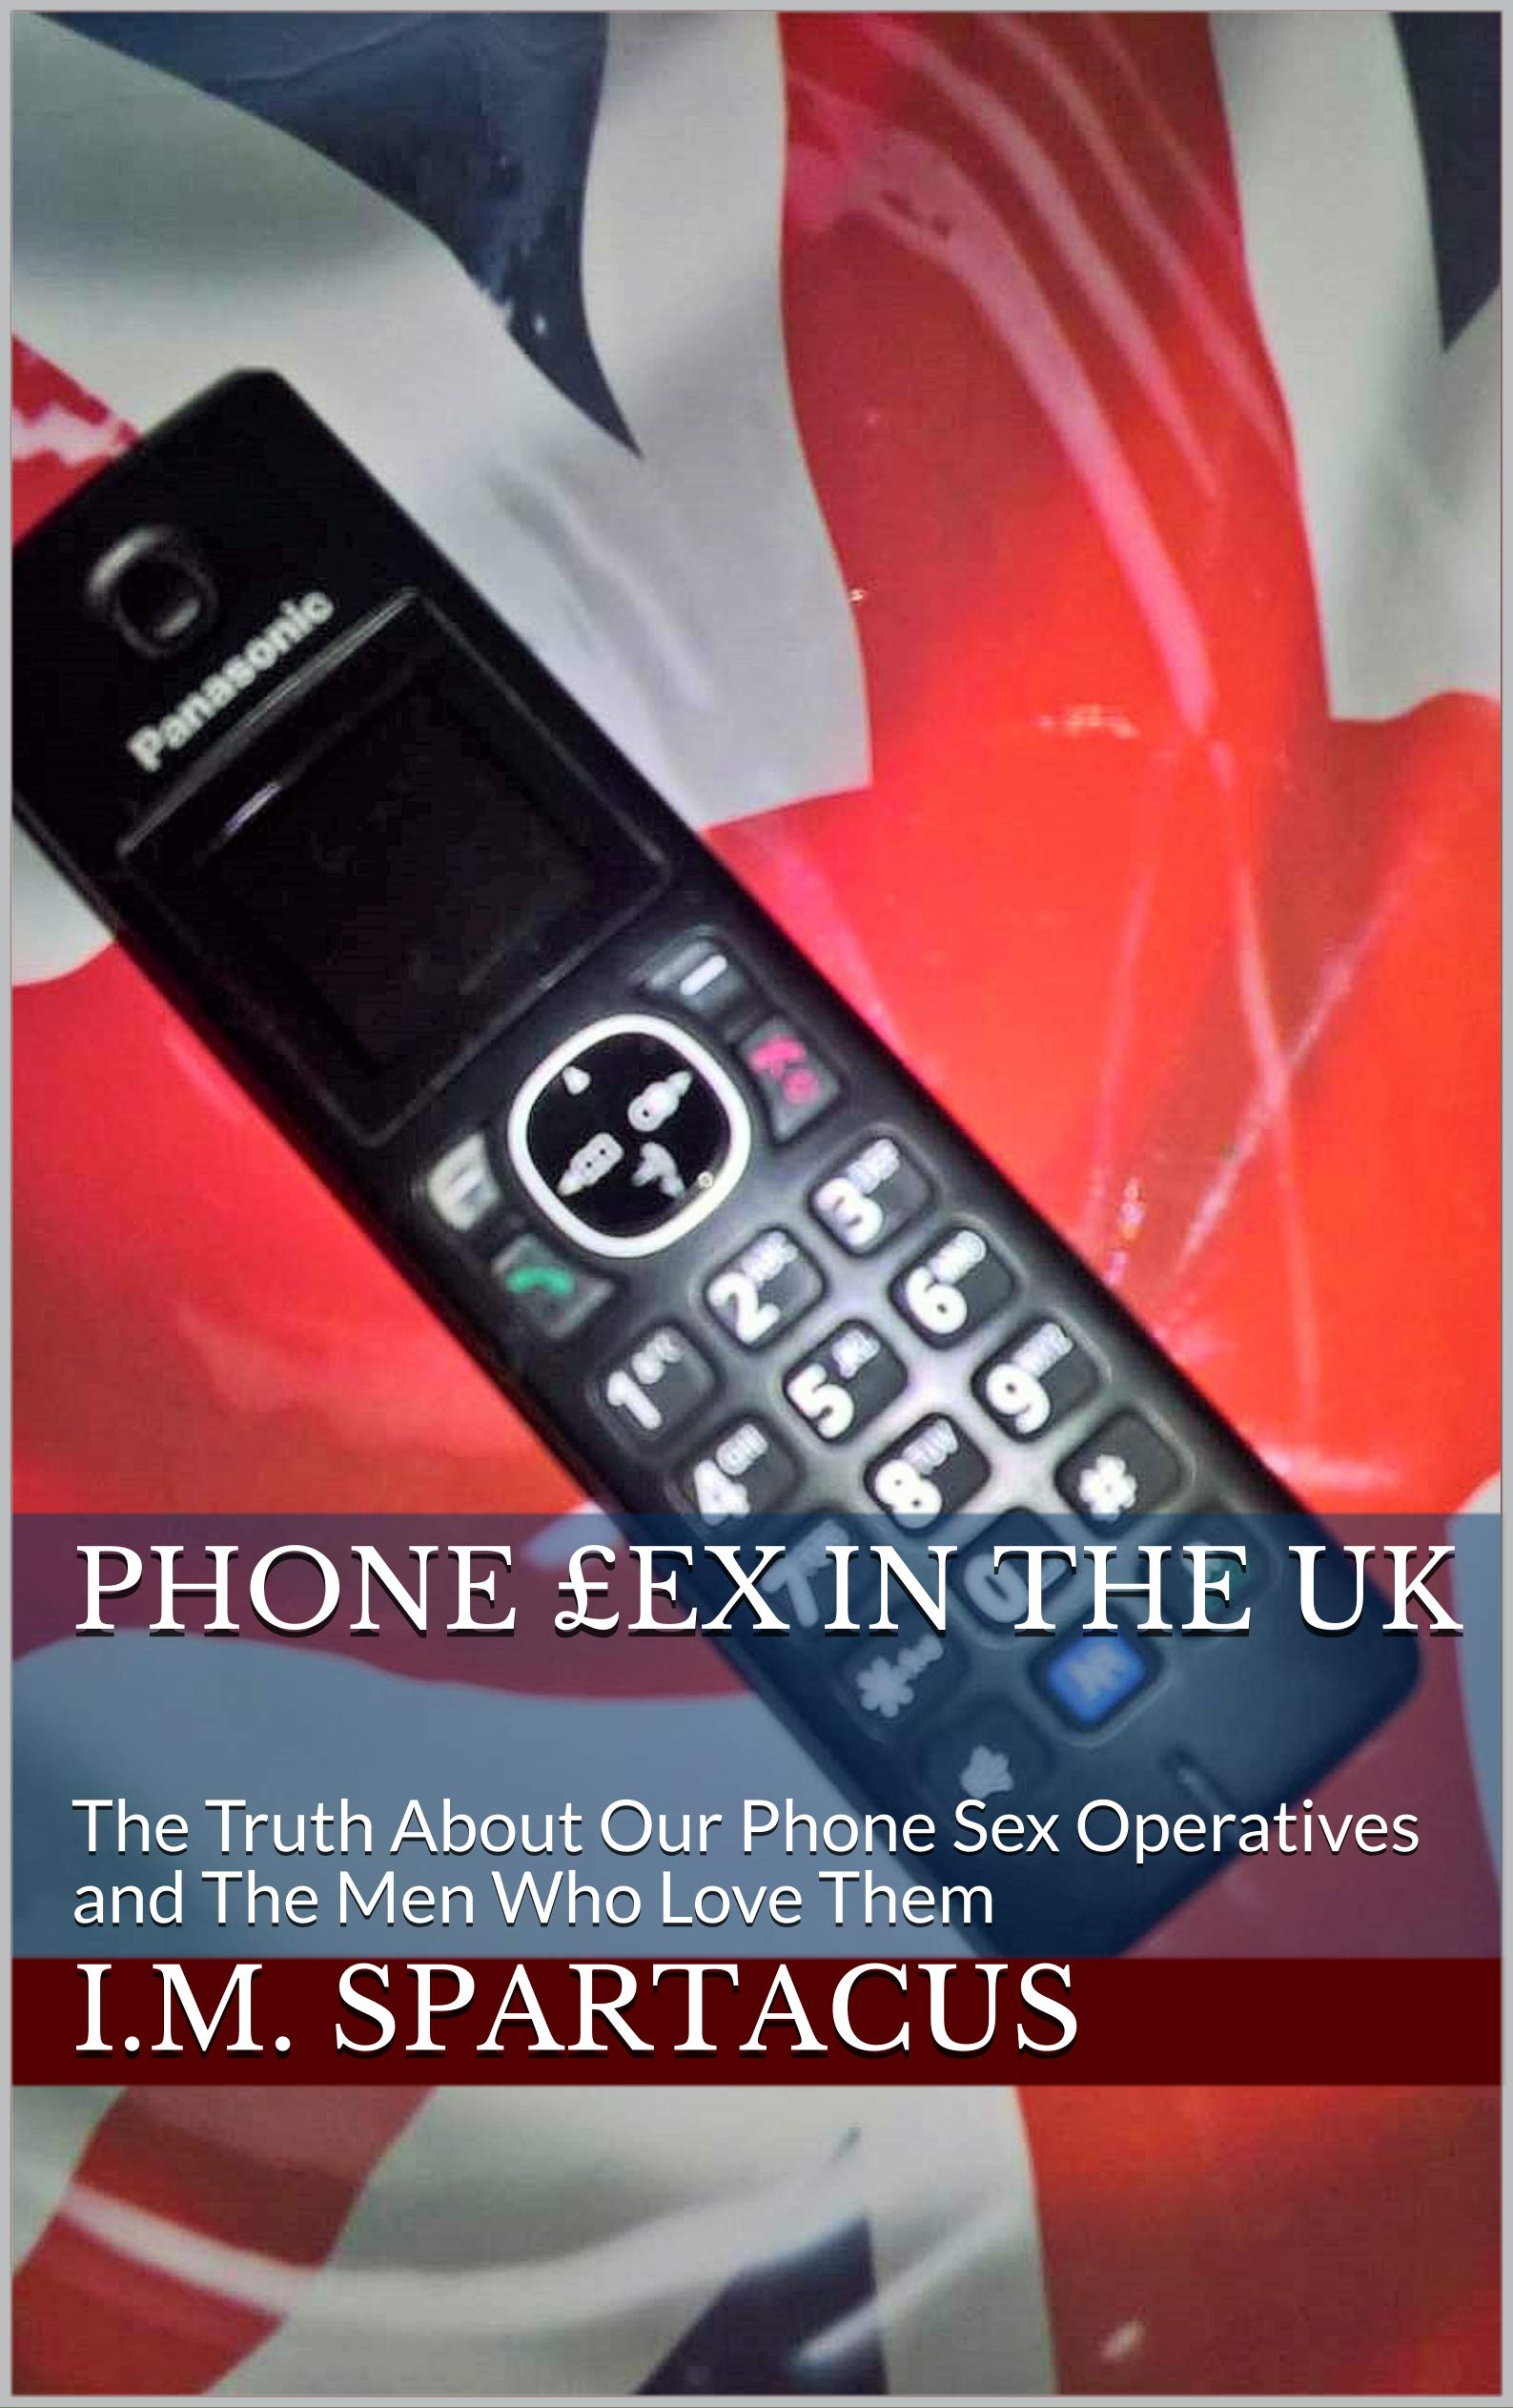 Phone £ex In The UK: The Truth About Our Phone Sex Operatives and The Men Who Love Them (I.M. Spartacus Book 2)